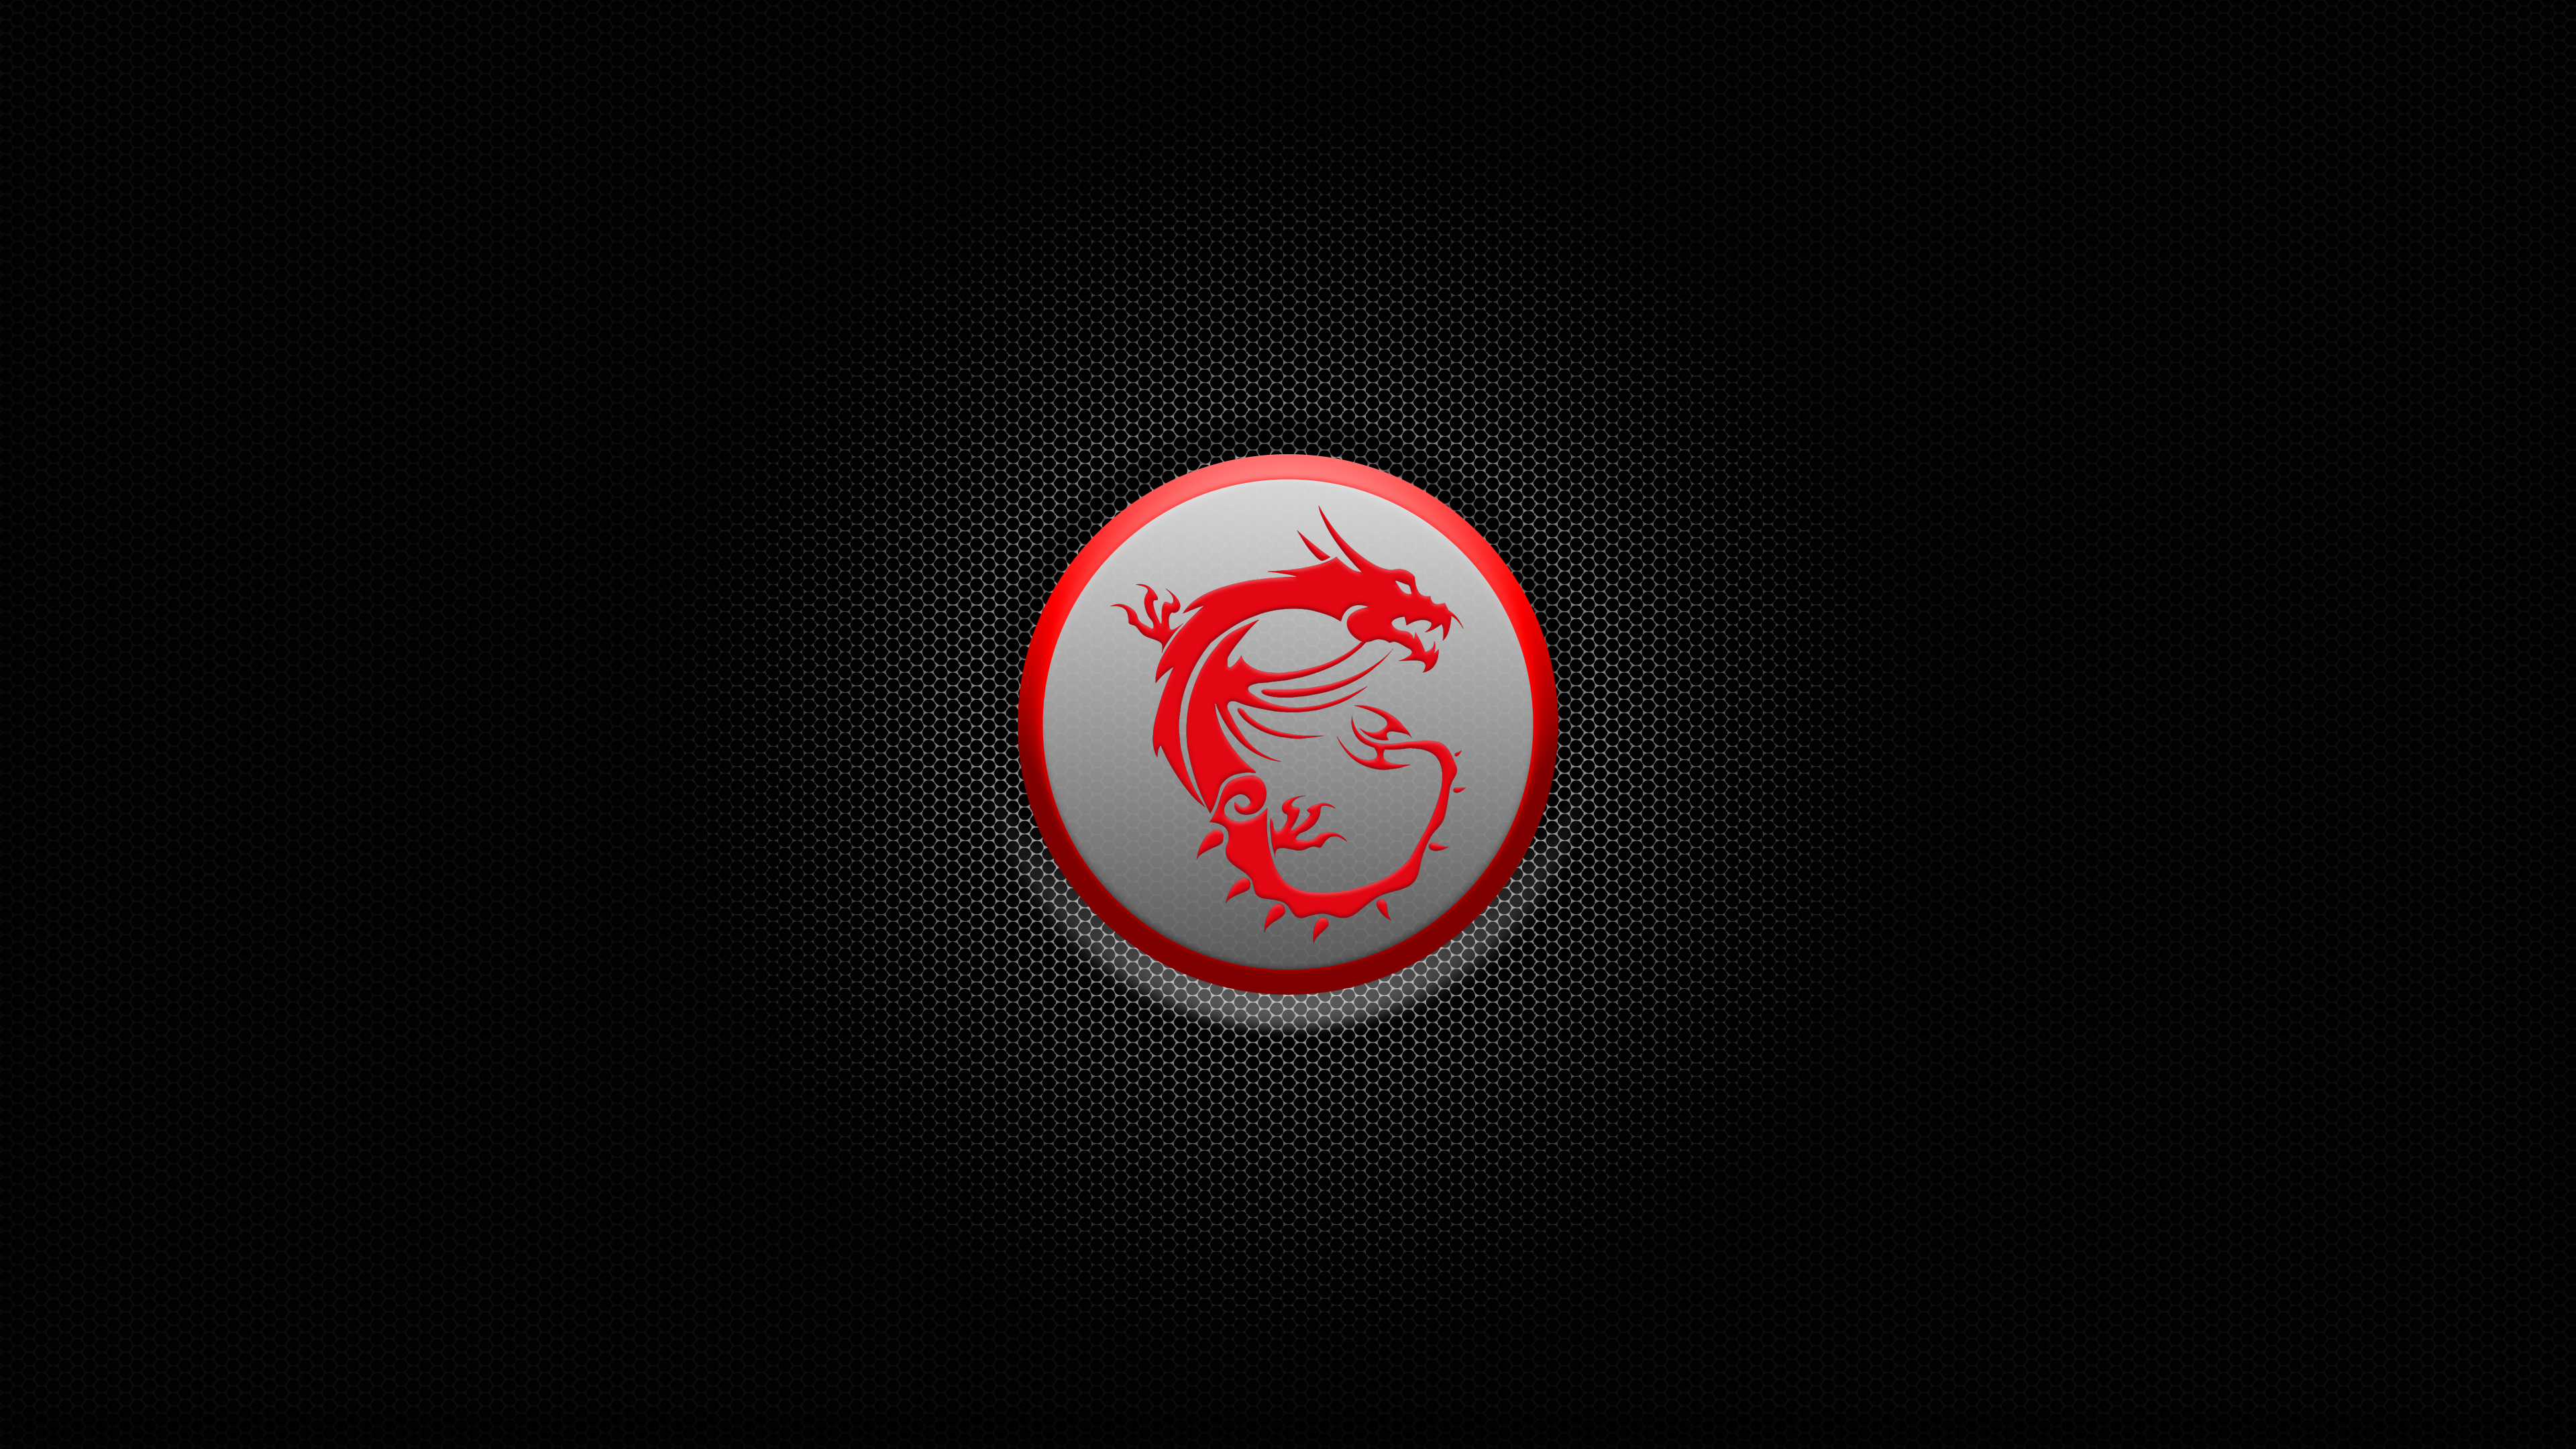 Msi Wallpaper Wallpapersafari